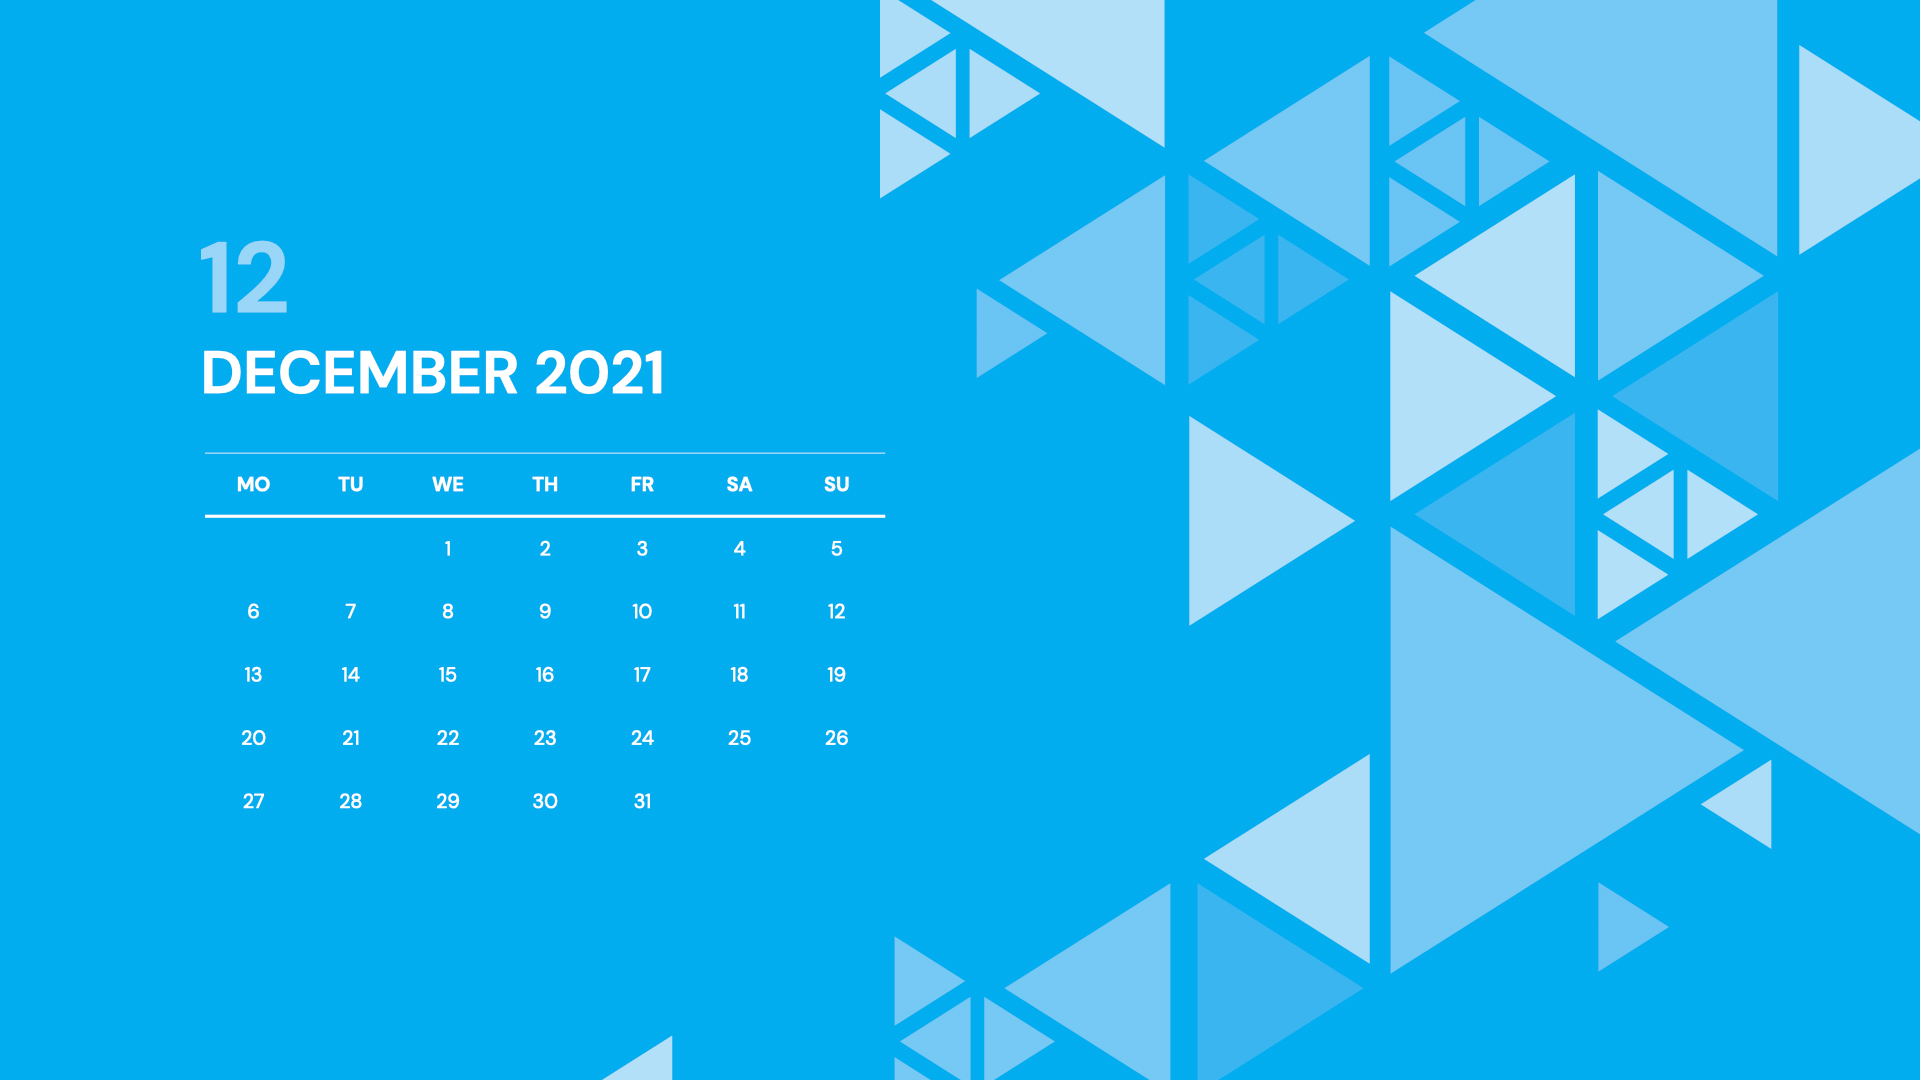 2021 Powerpoint Calendar Template - Free Download Now!